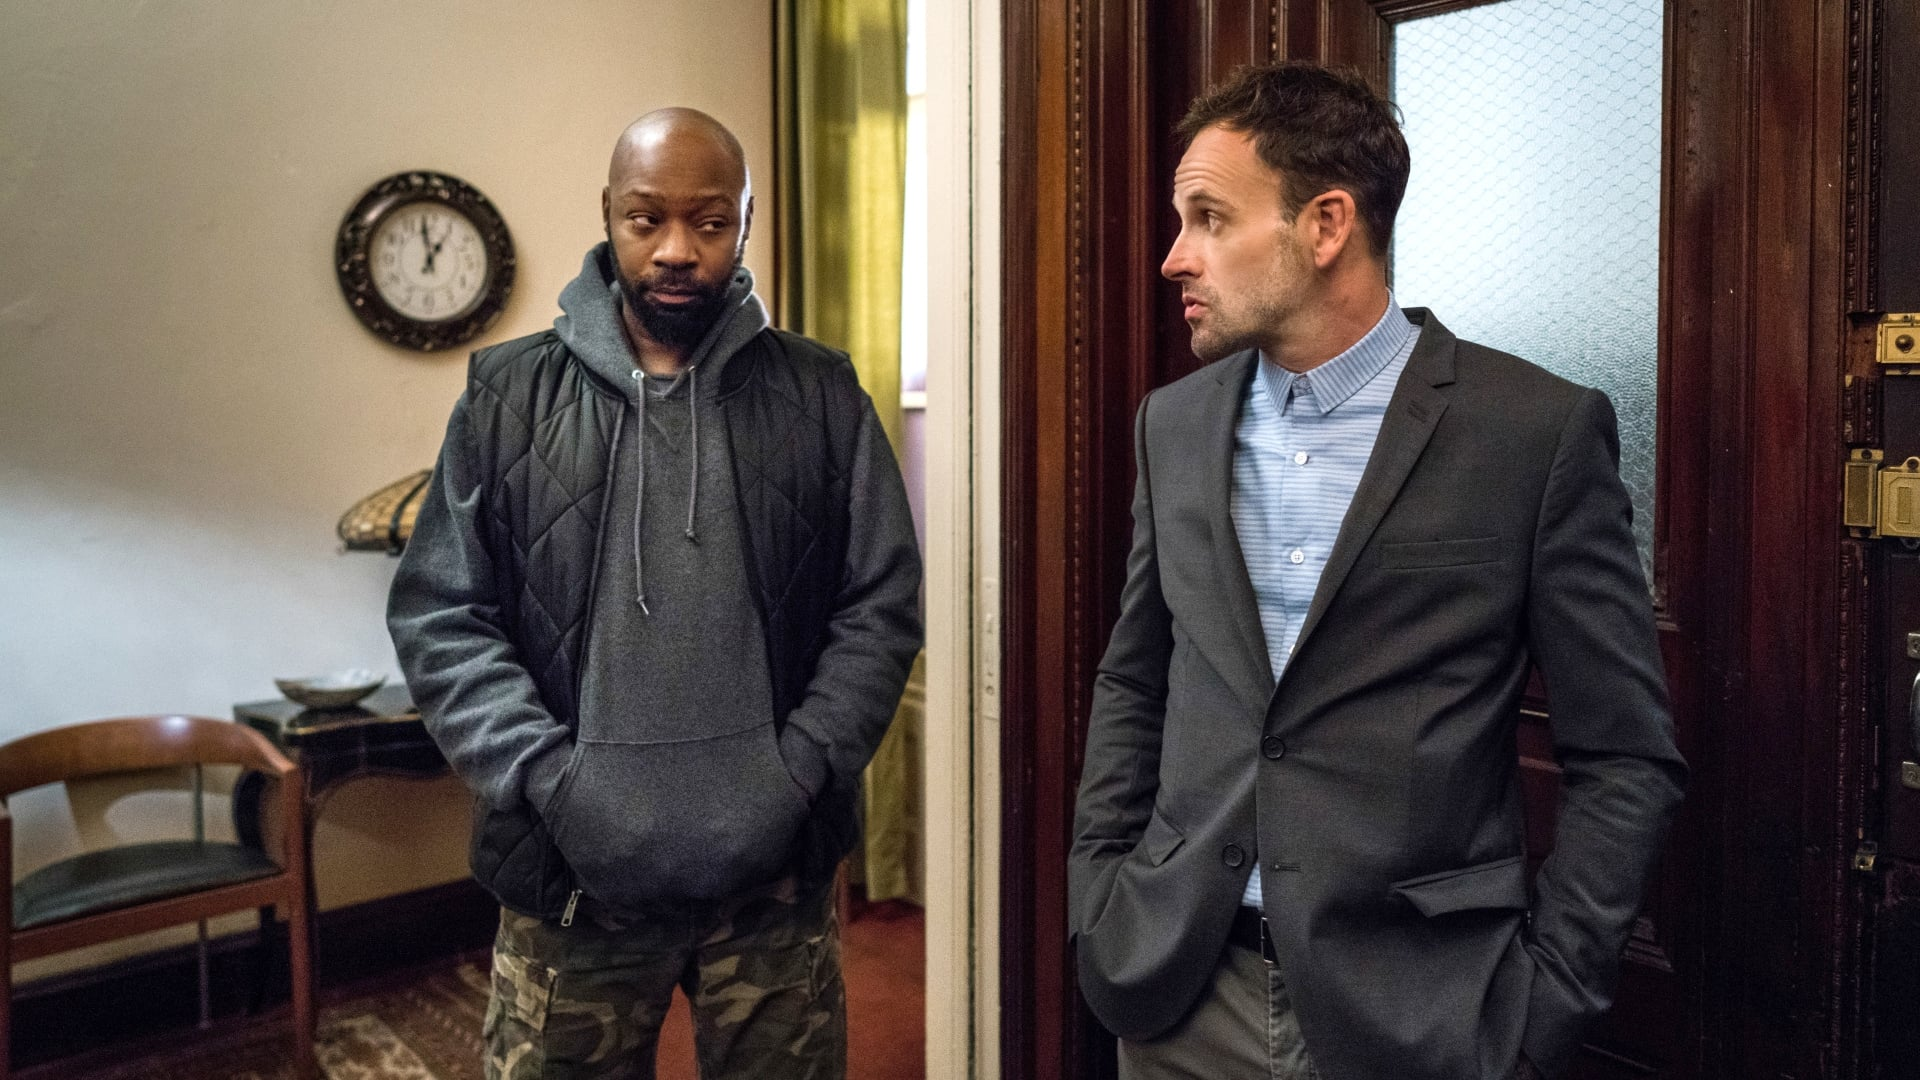 Elementary - Season 5 Episode 9 : It Serves You Right to Suffer